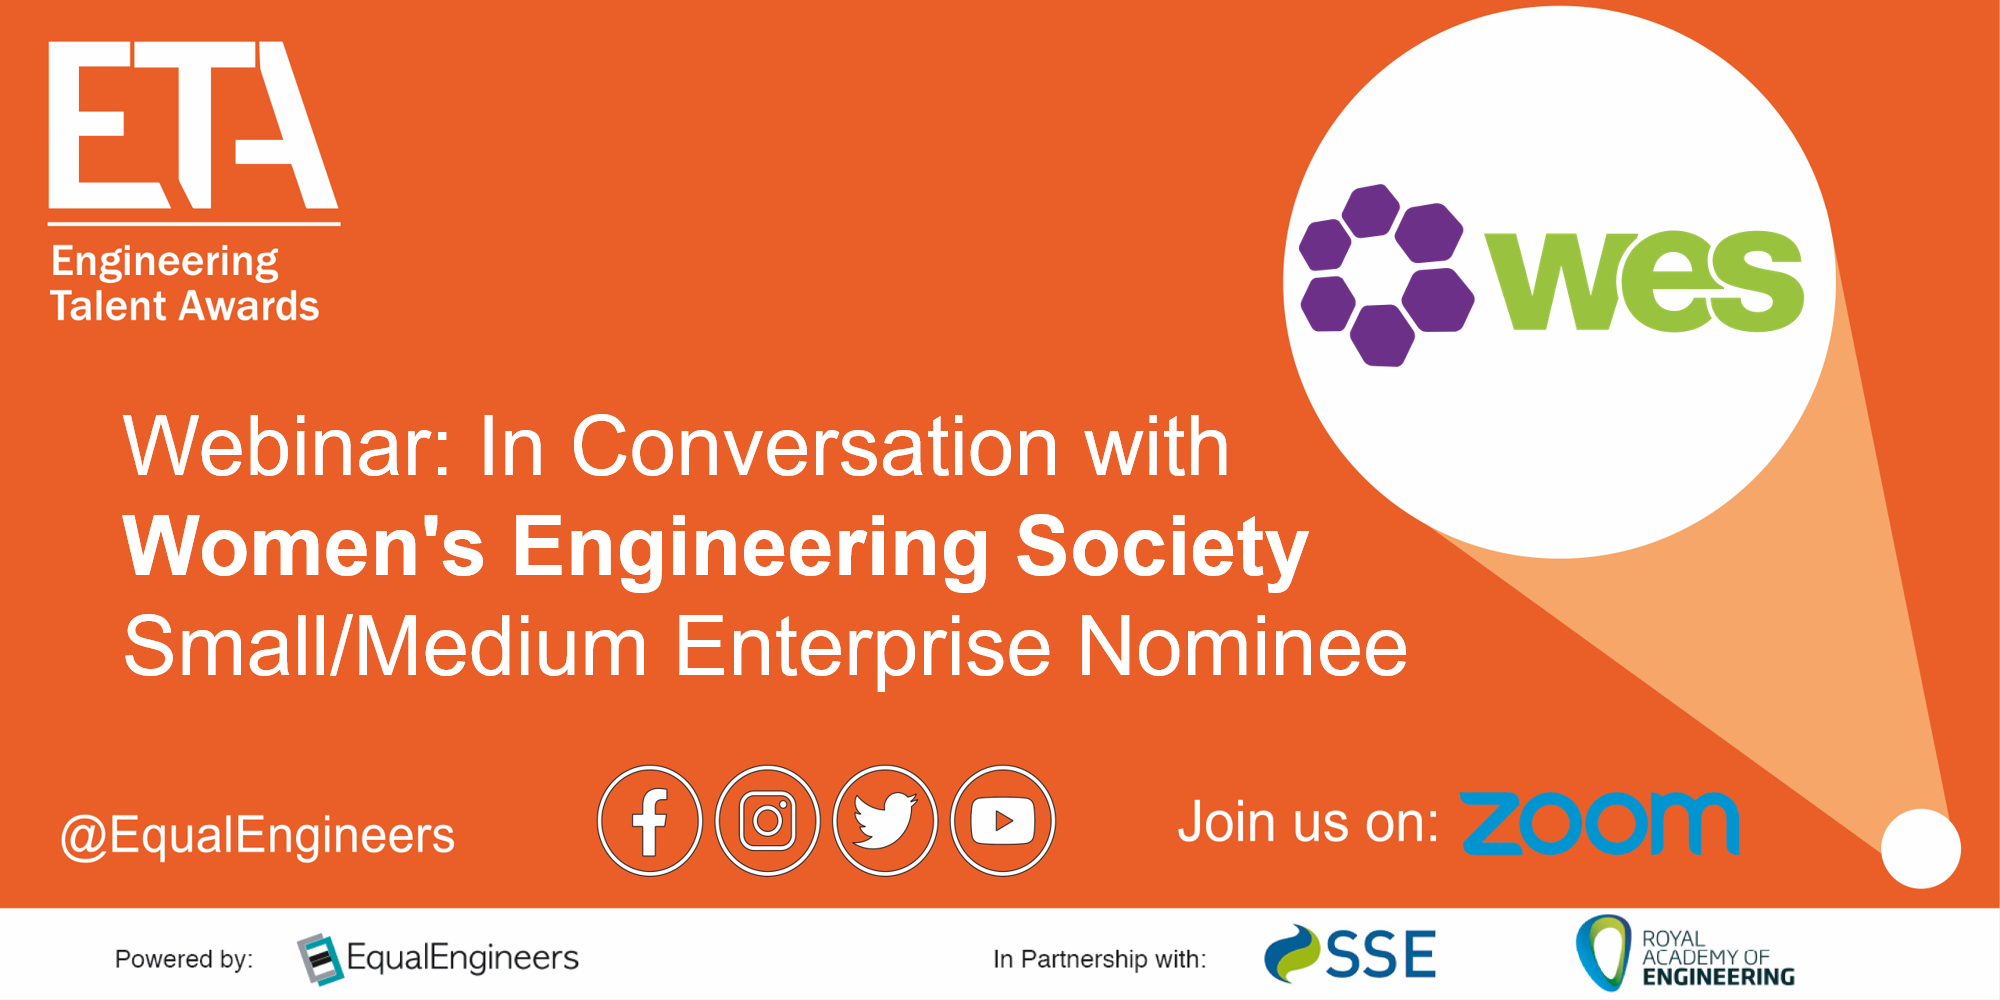 small-medium-enterprise-nominee-womens-engineering-society